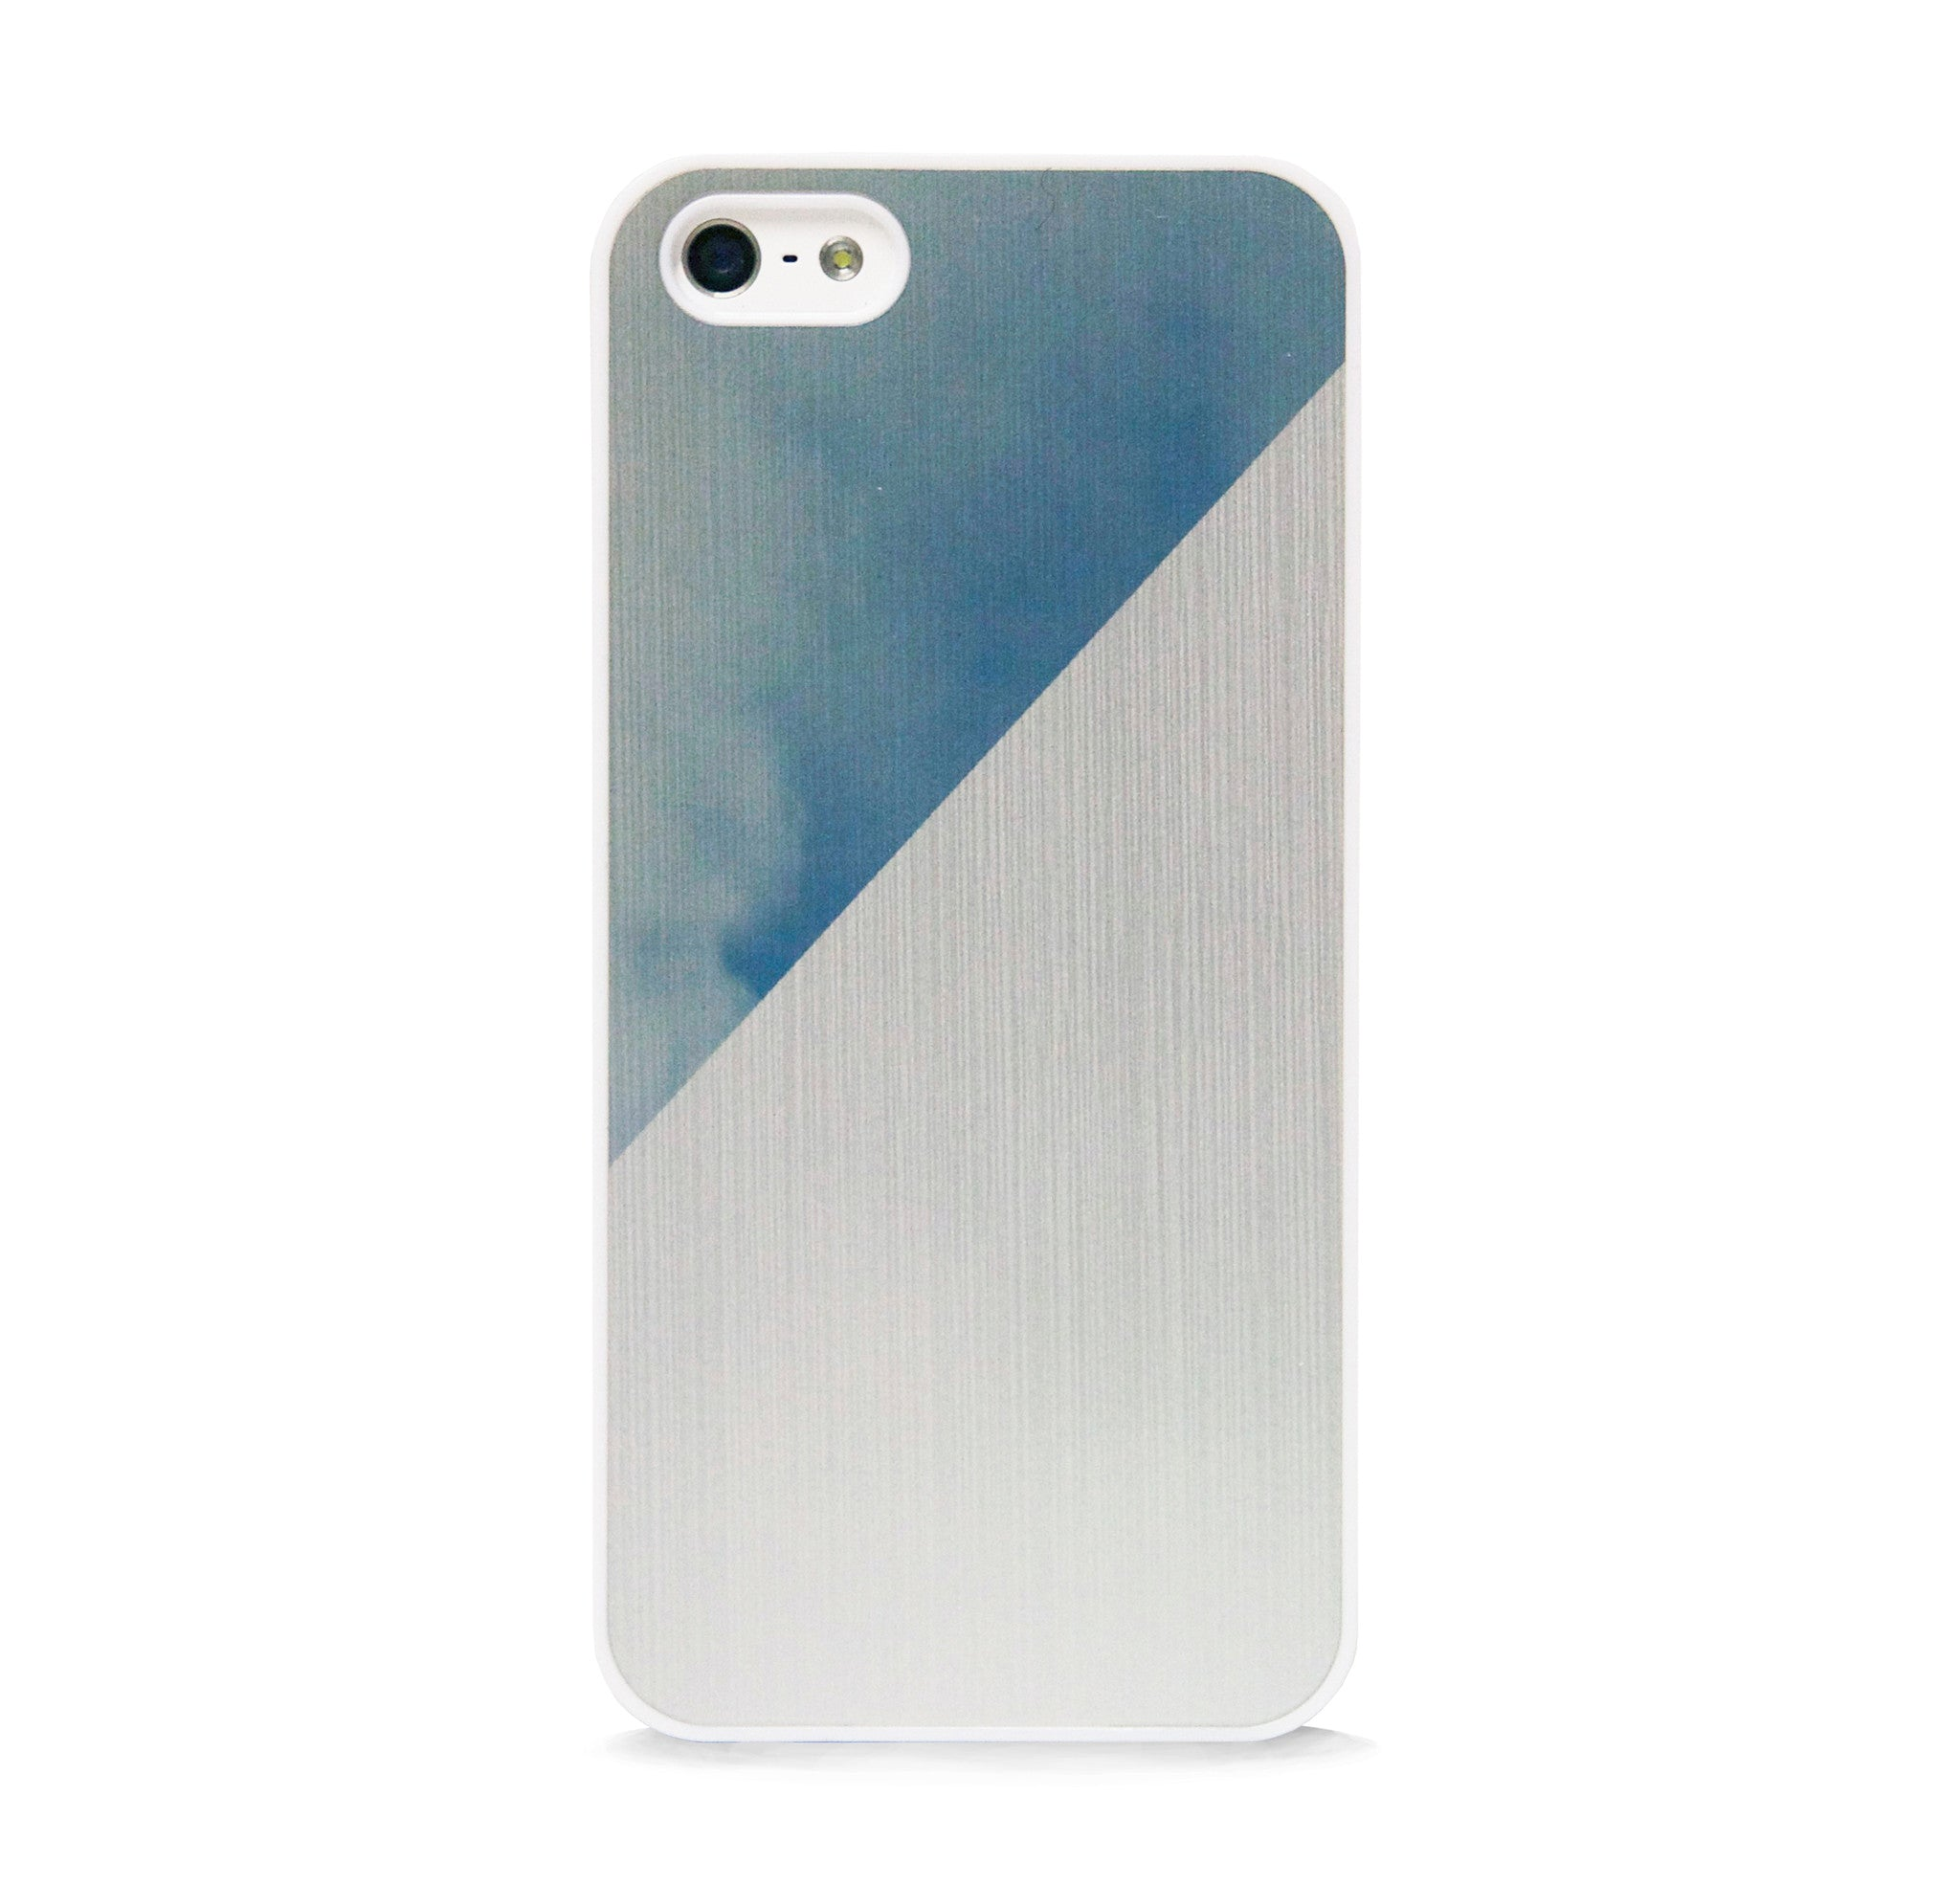 BRUSHED METAL SKY IPHONE 5/5S CASE